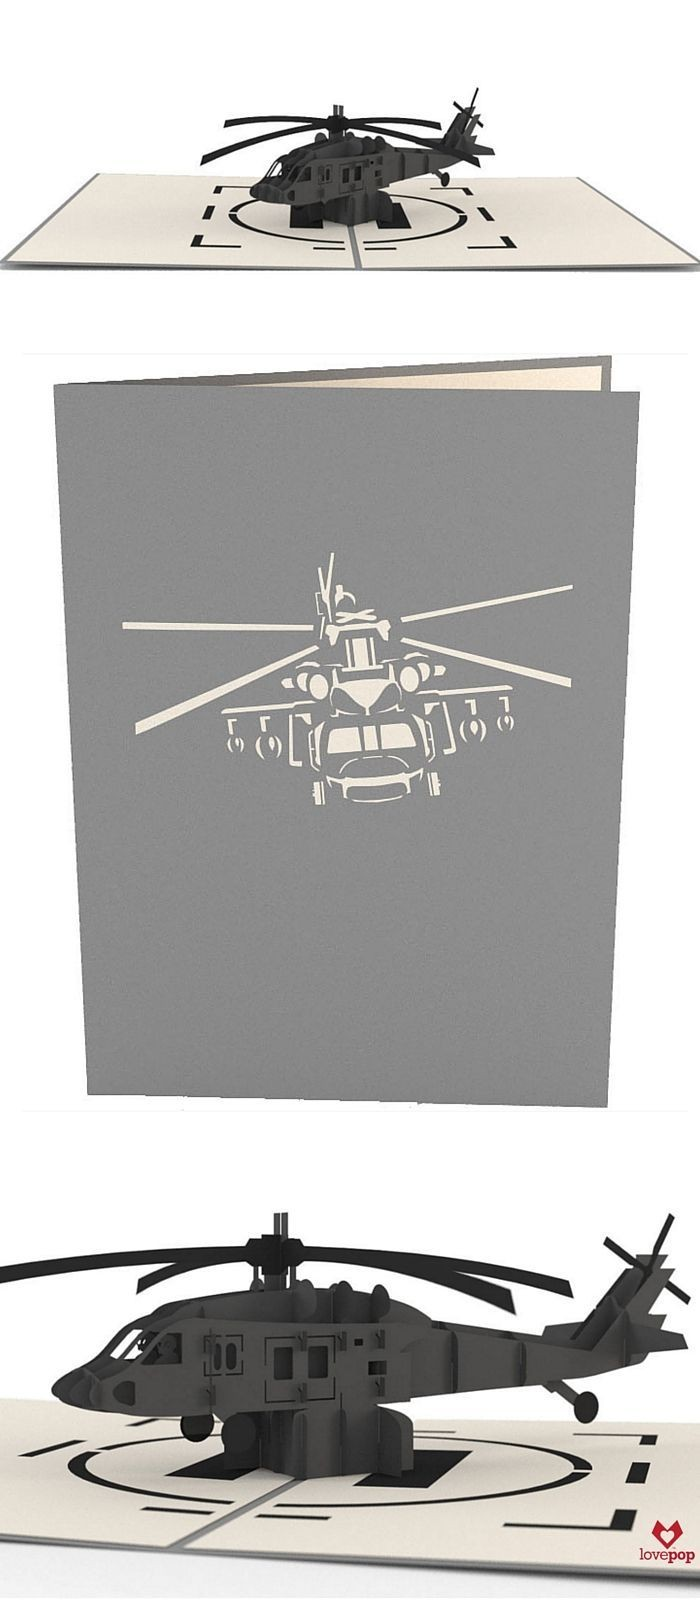 Helicopter Papercraft Blackhawk Helicopter Gifties Pinterest